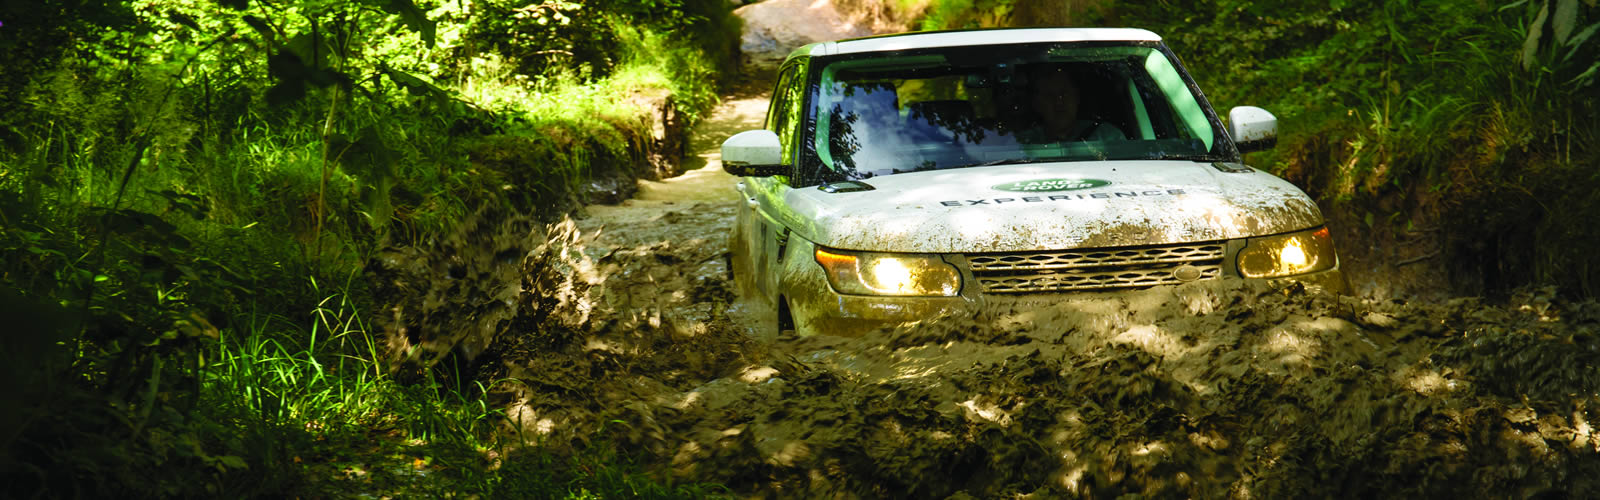 GAIN A GREATER UNDERSTANDING OF OFF-ROAD VEHICLE CONTROL.<br><br>